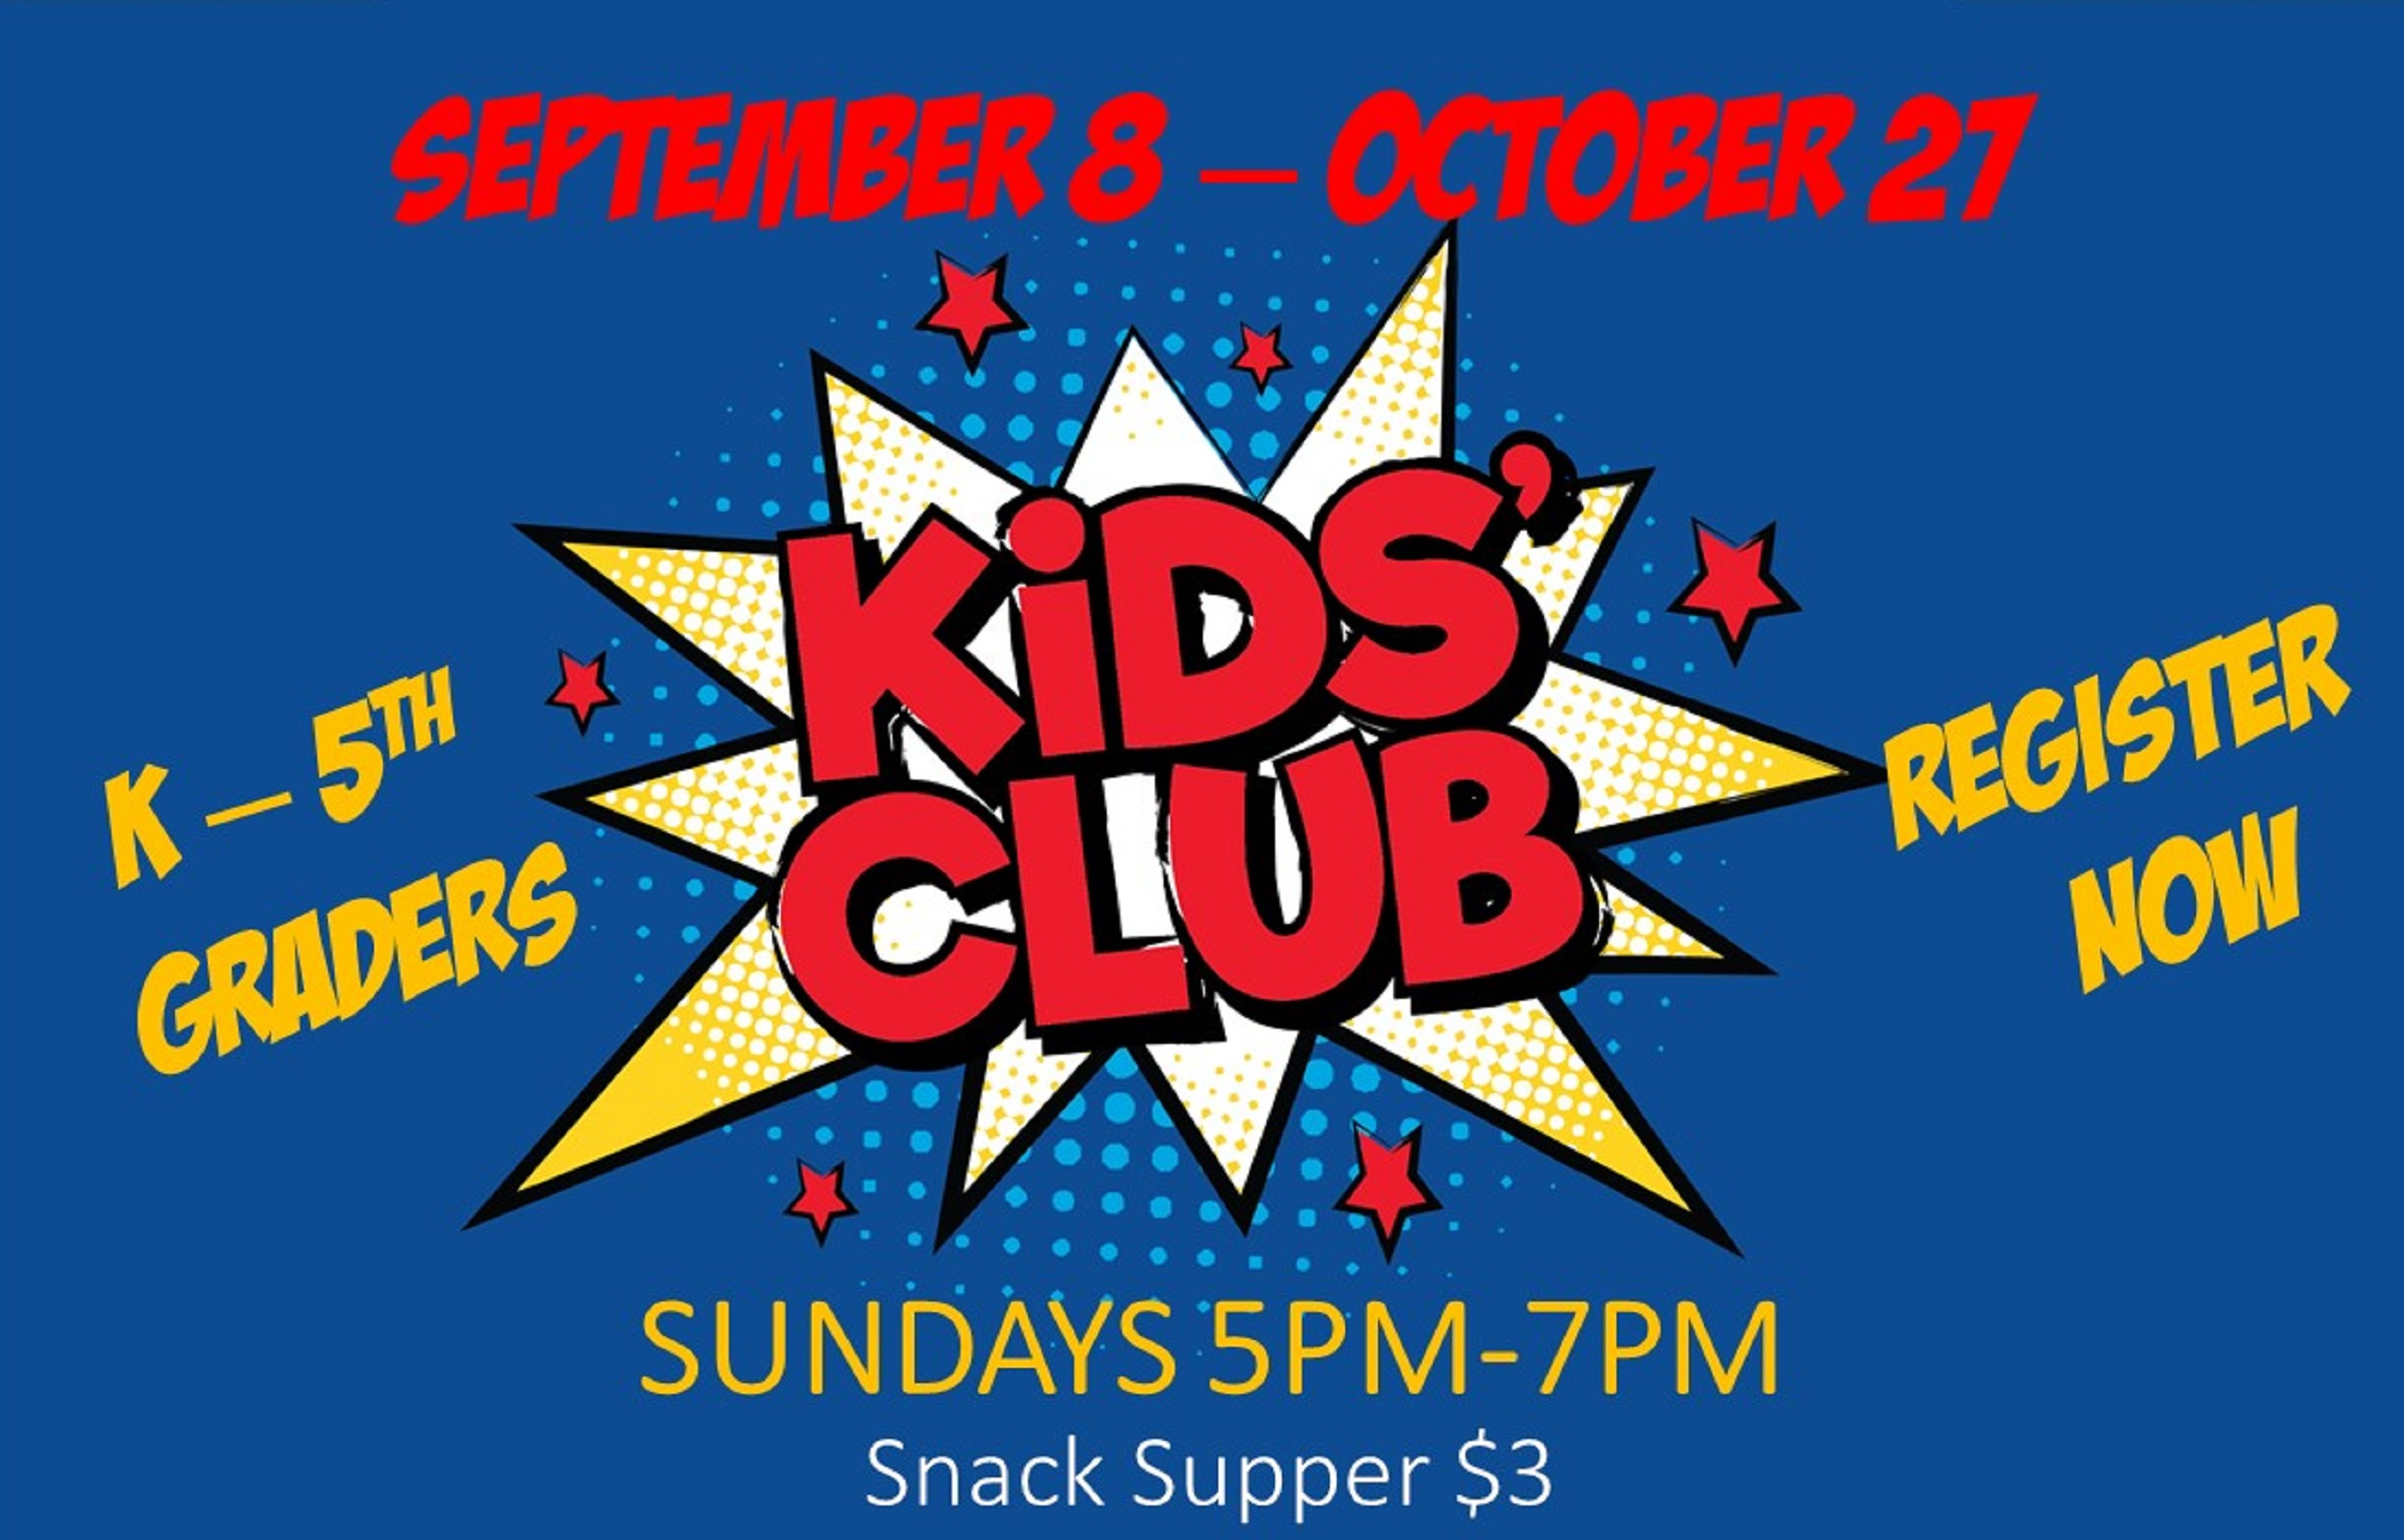 Kids Club Fall 2019 Rotator